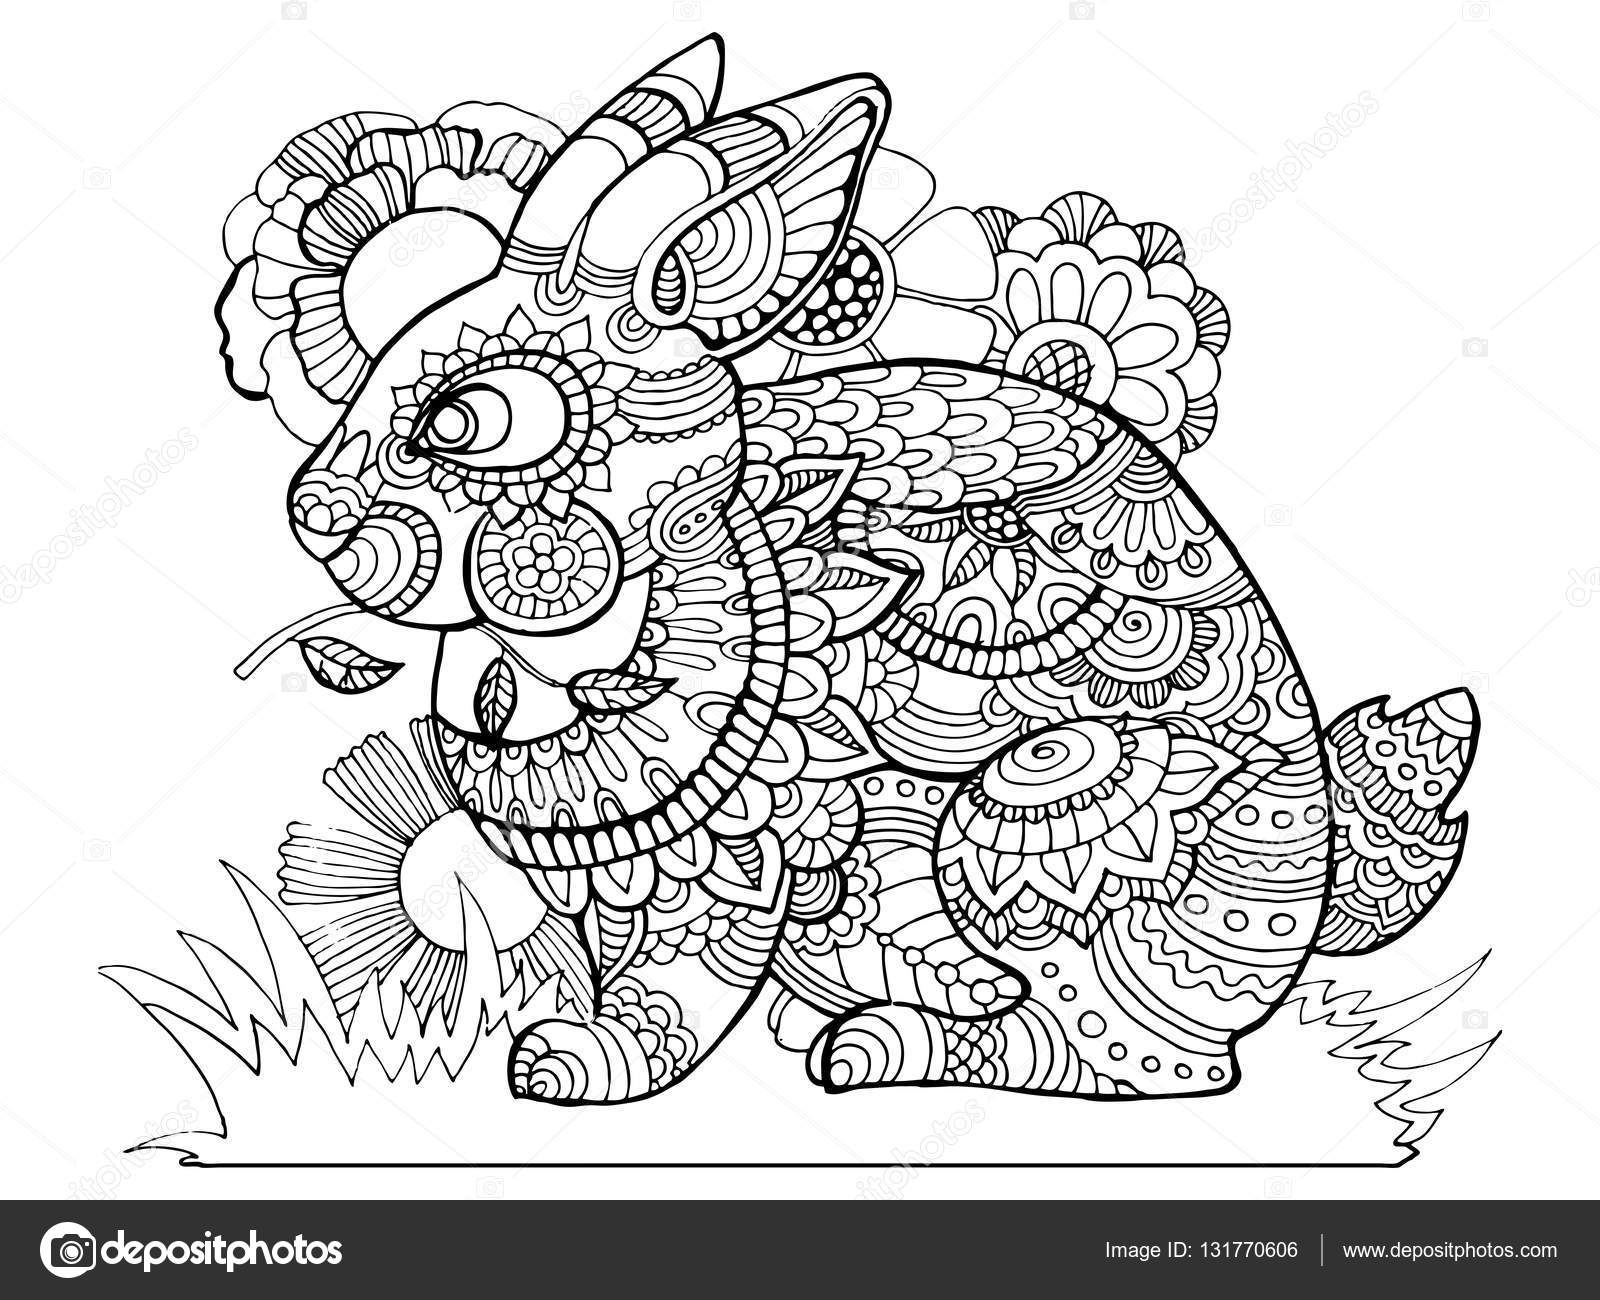 Bunny lapin cahier de coloriage pour adultes vector illustration Anti stress coloriage pour adulte Pochoir de tatouage Zentangle style